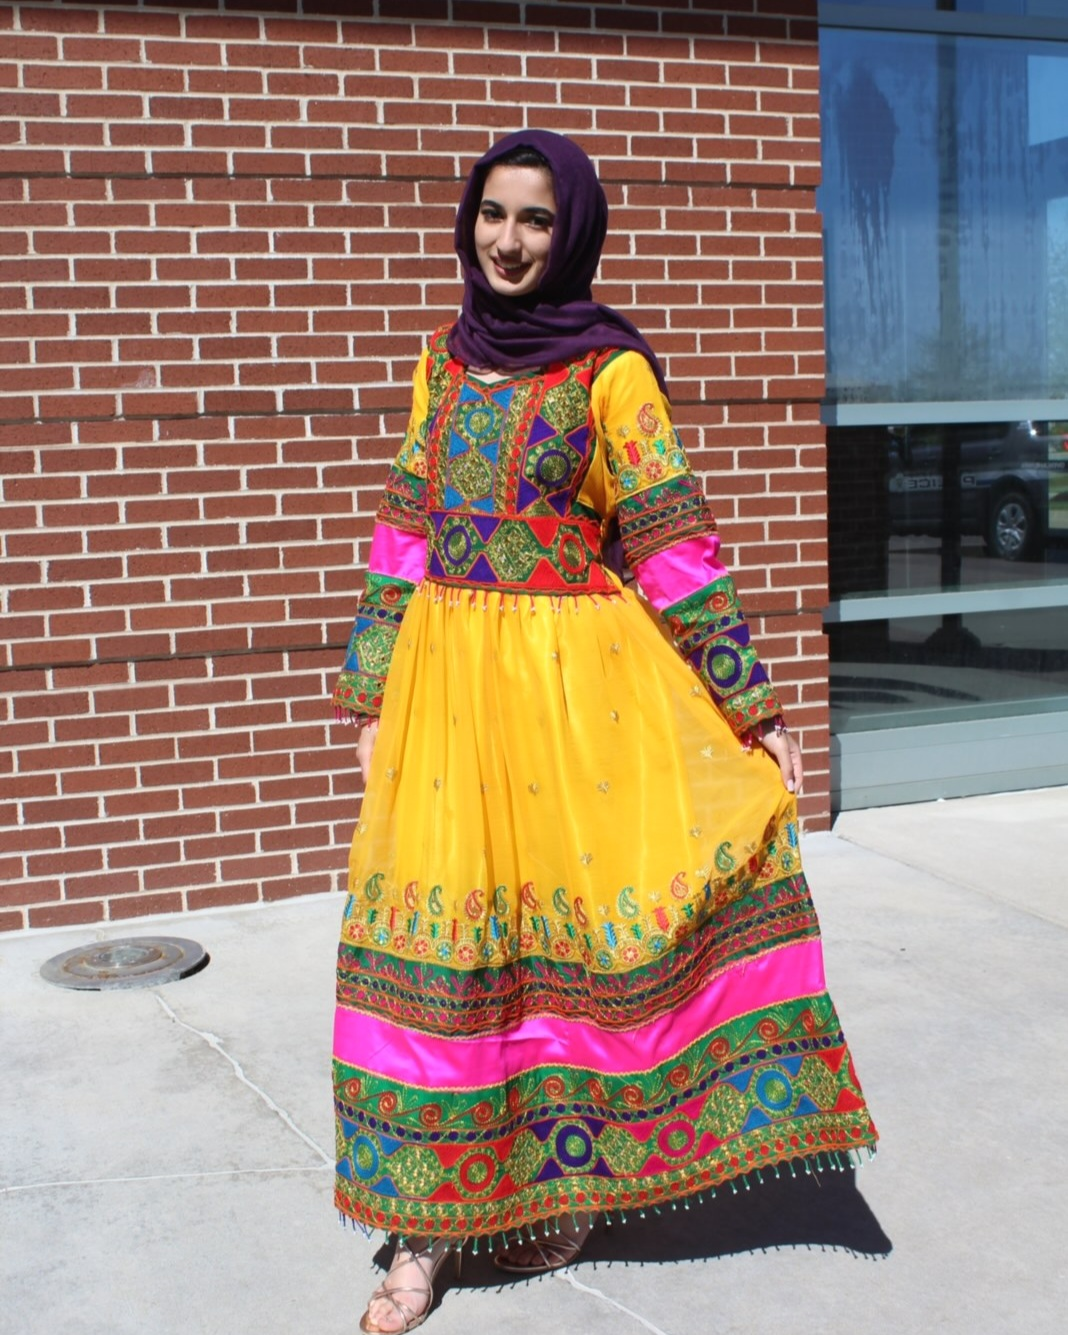 Secretary   -  Syeda Mahnoor  Born and raised in Overlandpark Kansas, Syeda Mahnoor attended her first MYNA camp in 2015. Since then MYNA has become a big part of her life. She is currently a freshmen, studying psychology at the University of Kansas. In her free time, Syeda likes to paint and spend time with her friends and family.